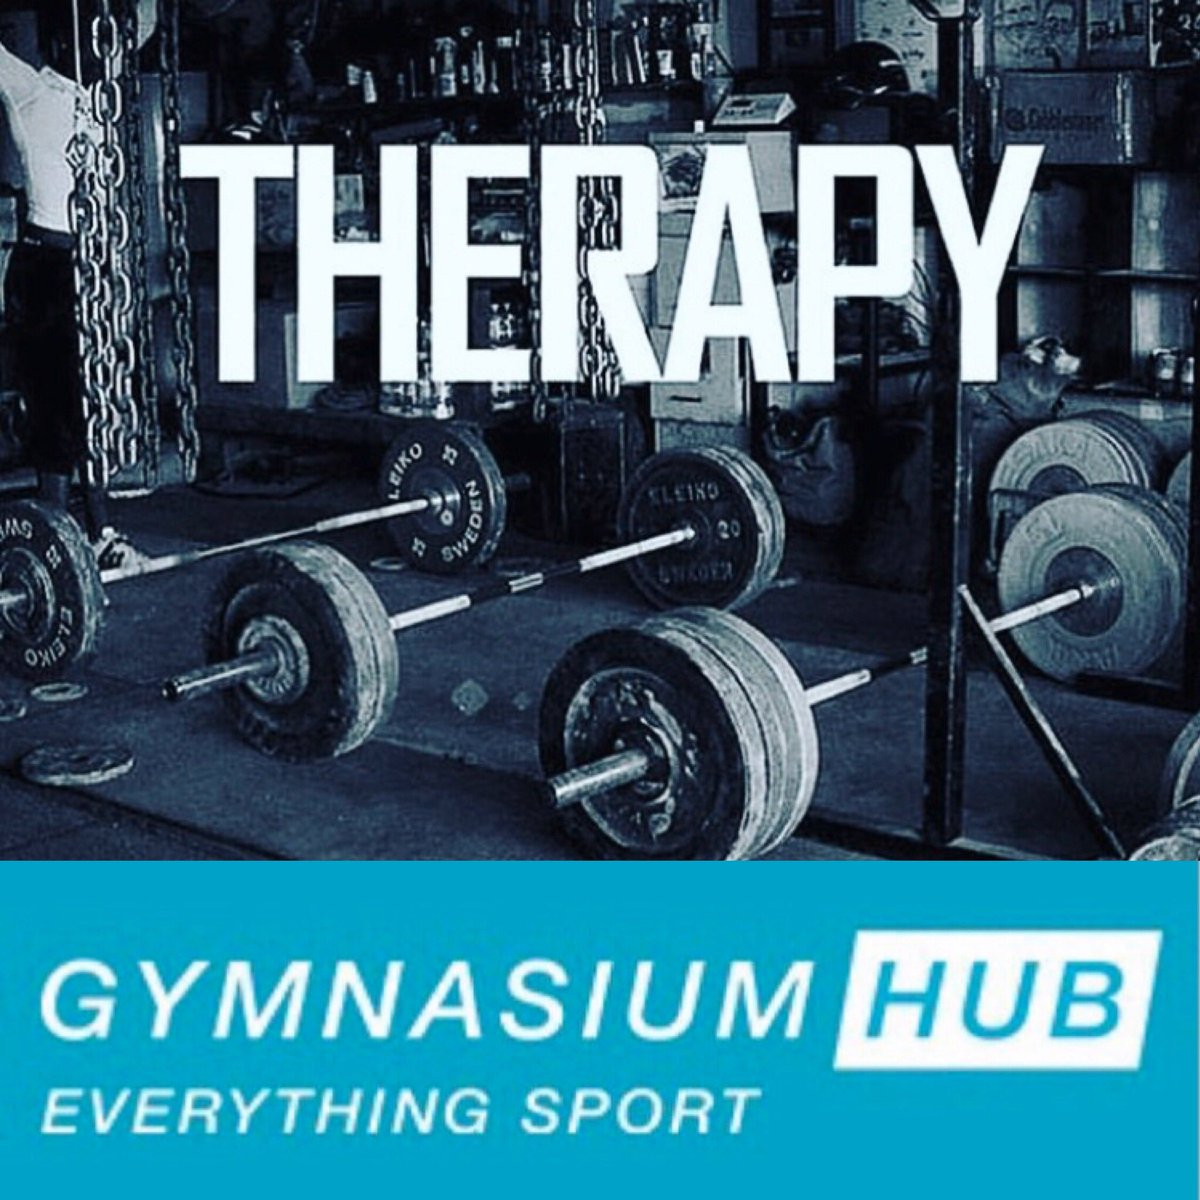 The most underrated therapy out there. Exercise. #gymnasiumhub #nutrition #fitness #tryit #martialarts #mentalhealth   #trainhard #stamina #forme #beastmode #strengthtraining #fitnessgoals #gymlife #crossfit #workout #exercise #fitness #nutrition #tryit #garyveechallengepic.twitter.com/Kf6aQiBarT